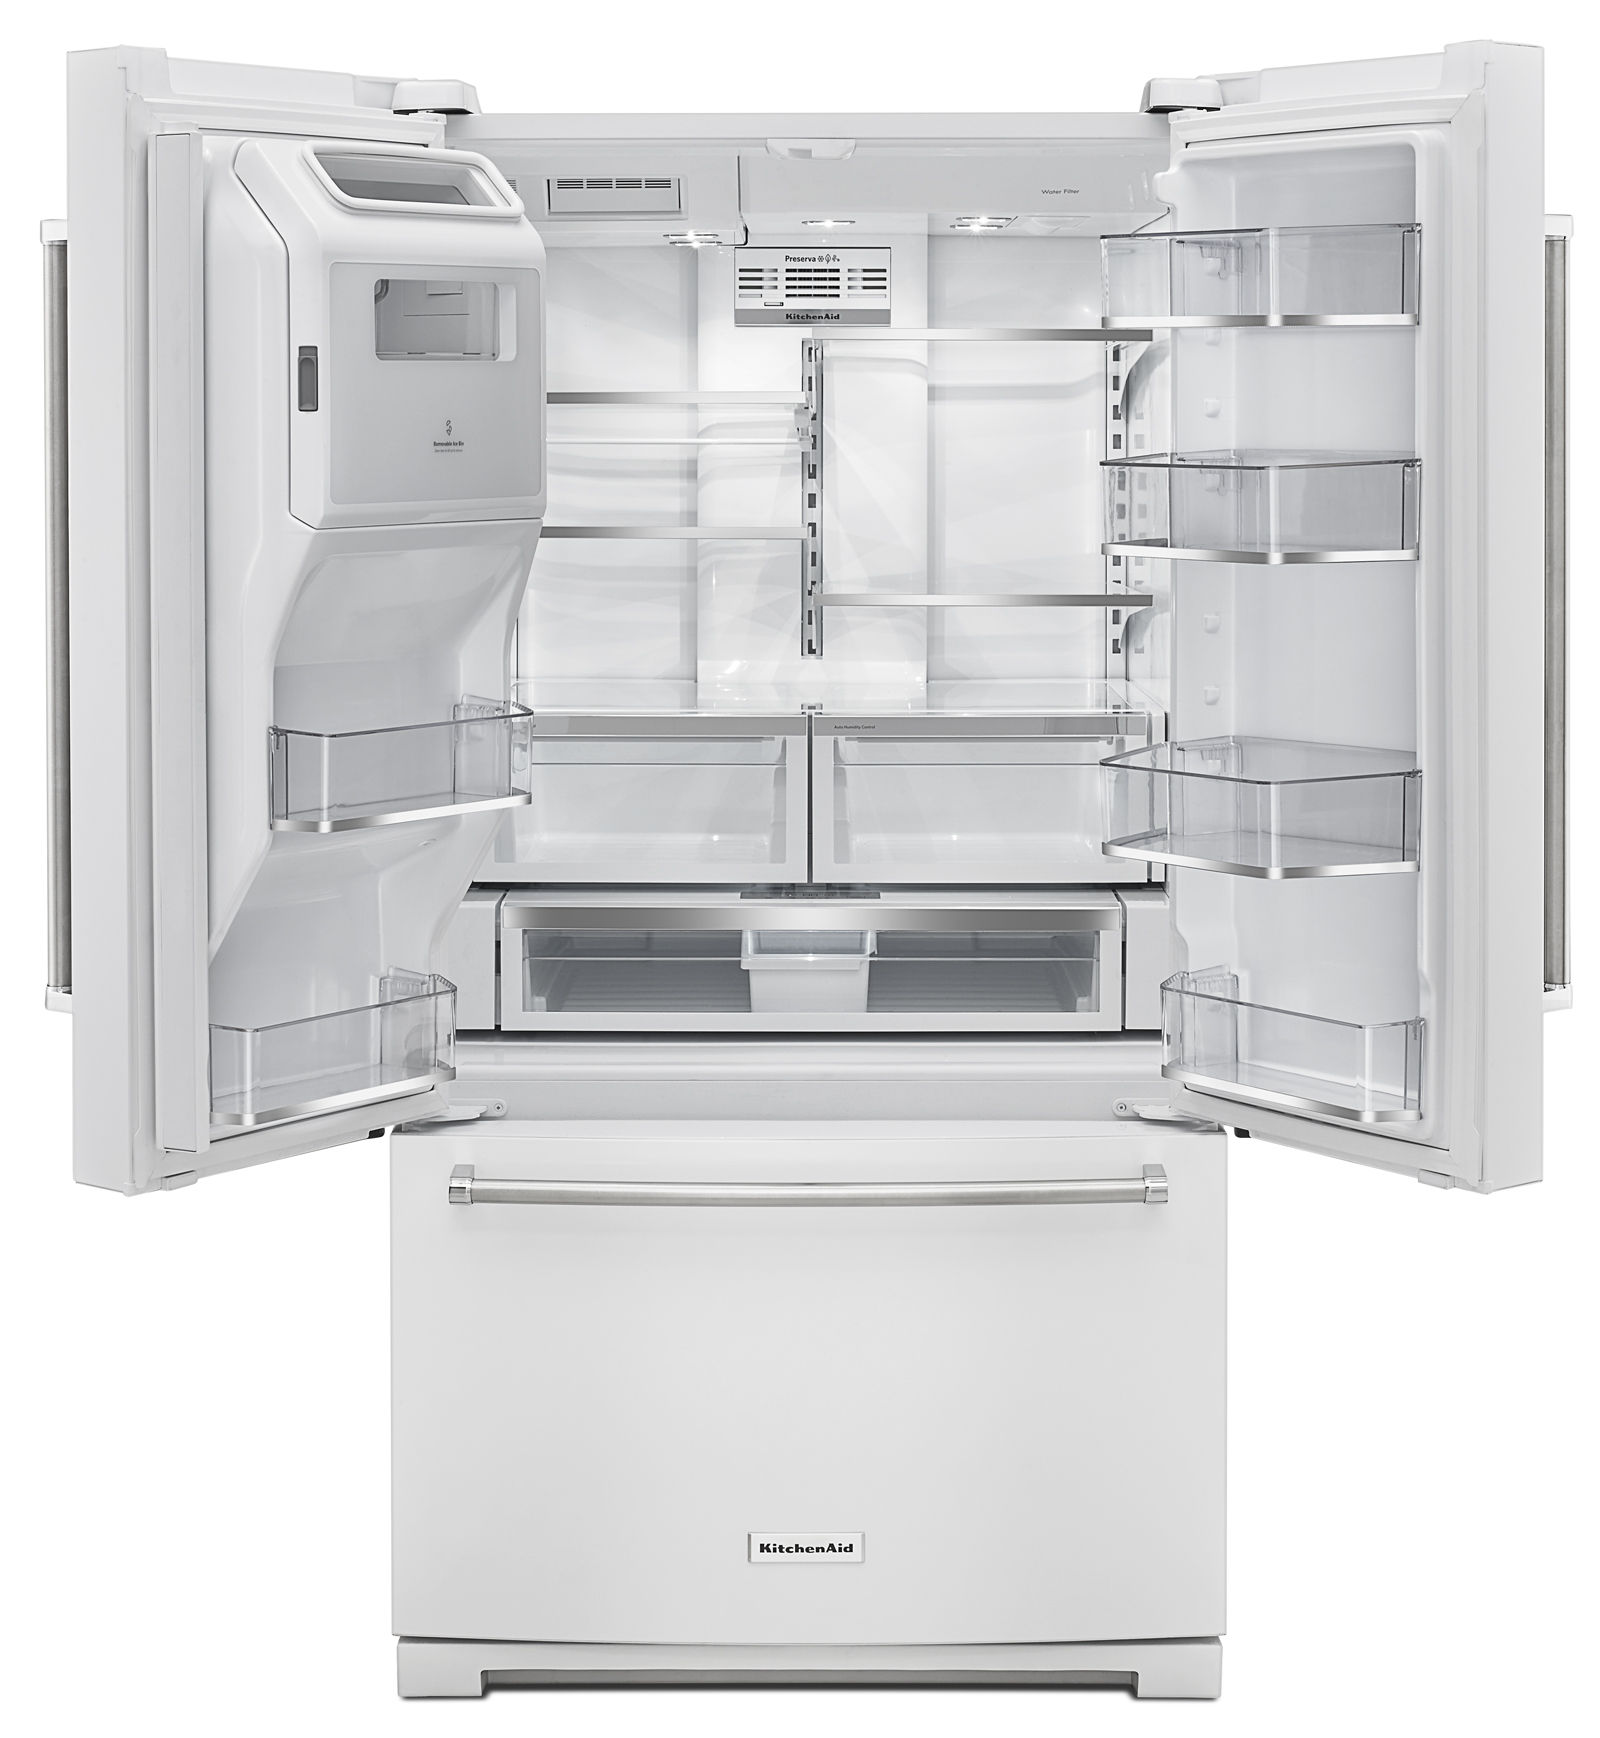 "KitchenAid KRFF507EWH 26.8 cu. ft. 36"" Width Standard Depth French Door Refrigerator - White"